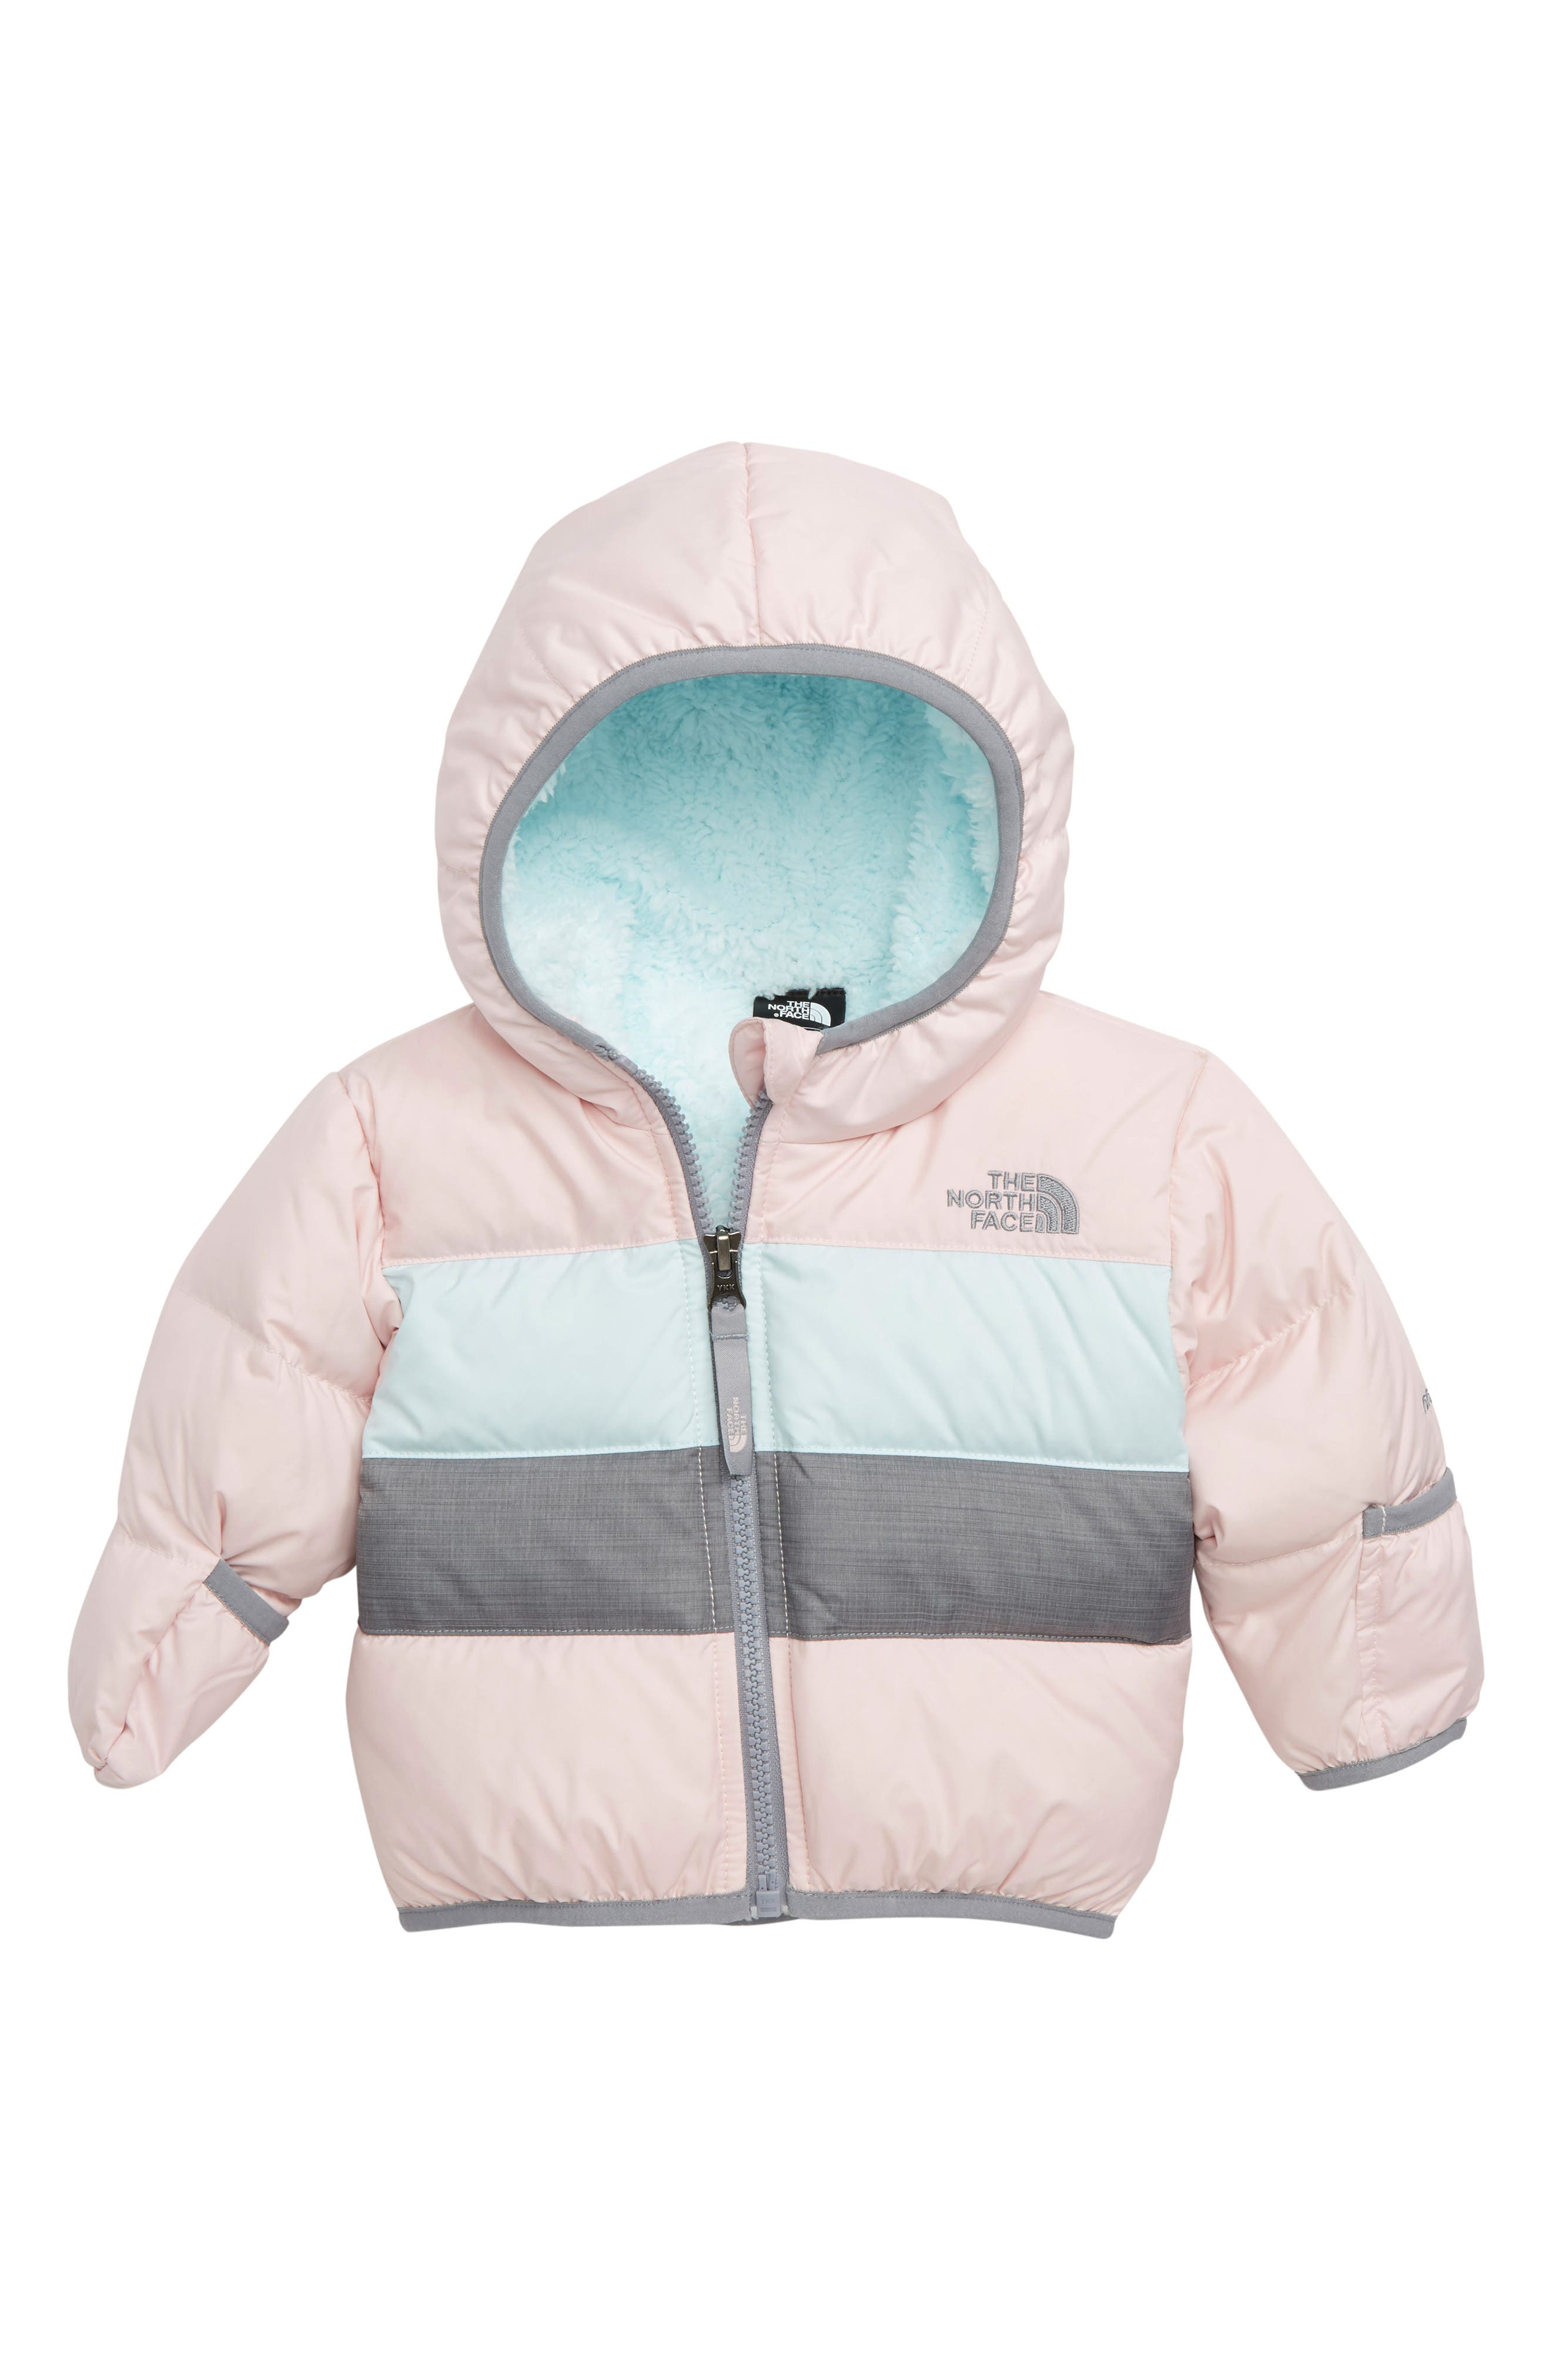 Moondoggy 2.0 Water Repellent Down Jacket,                             Main thumbnail 1, color,                             PURDY PINK